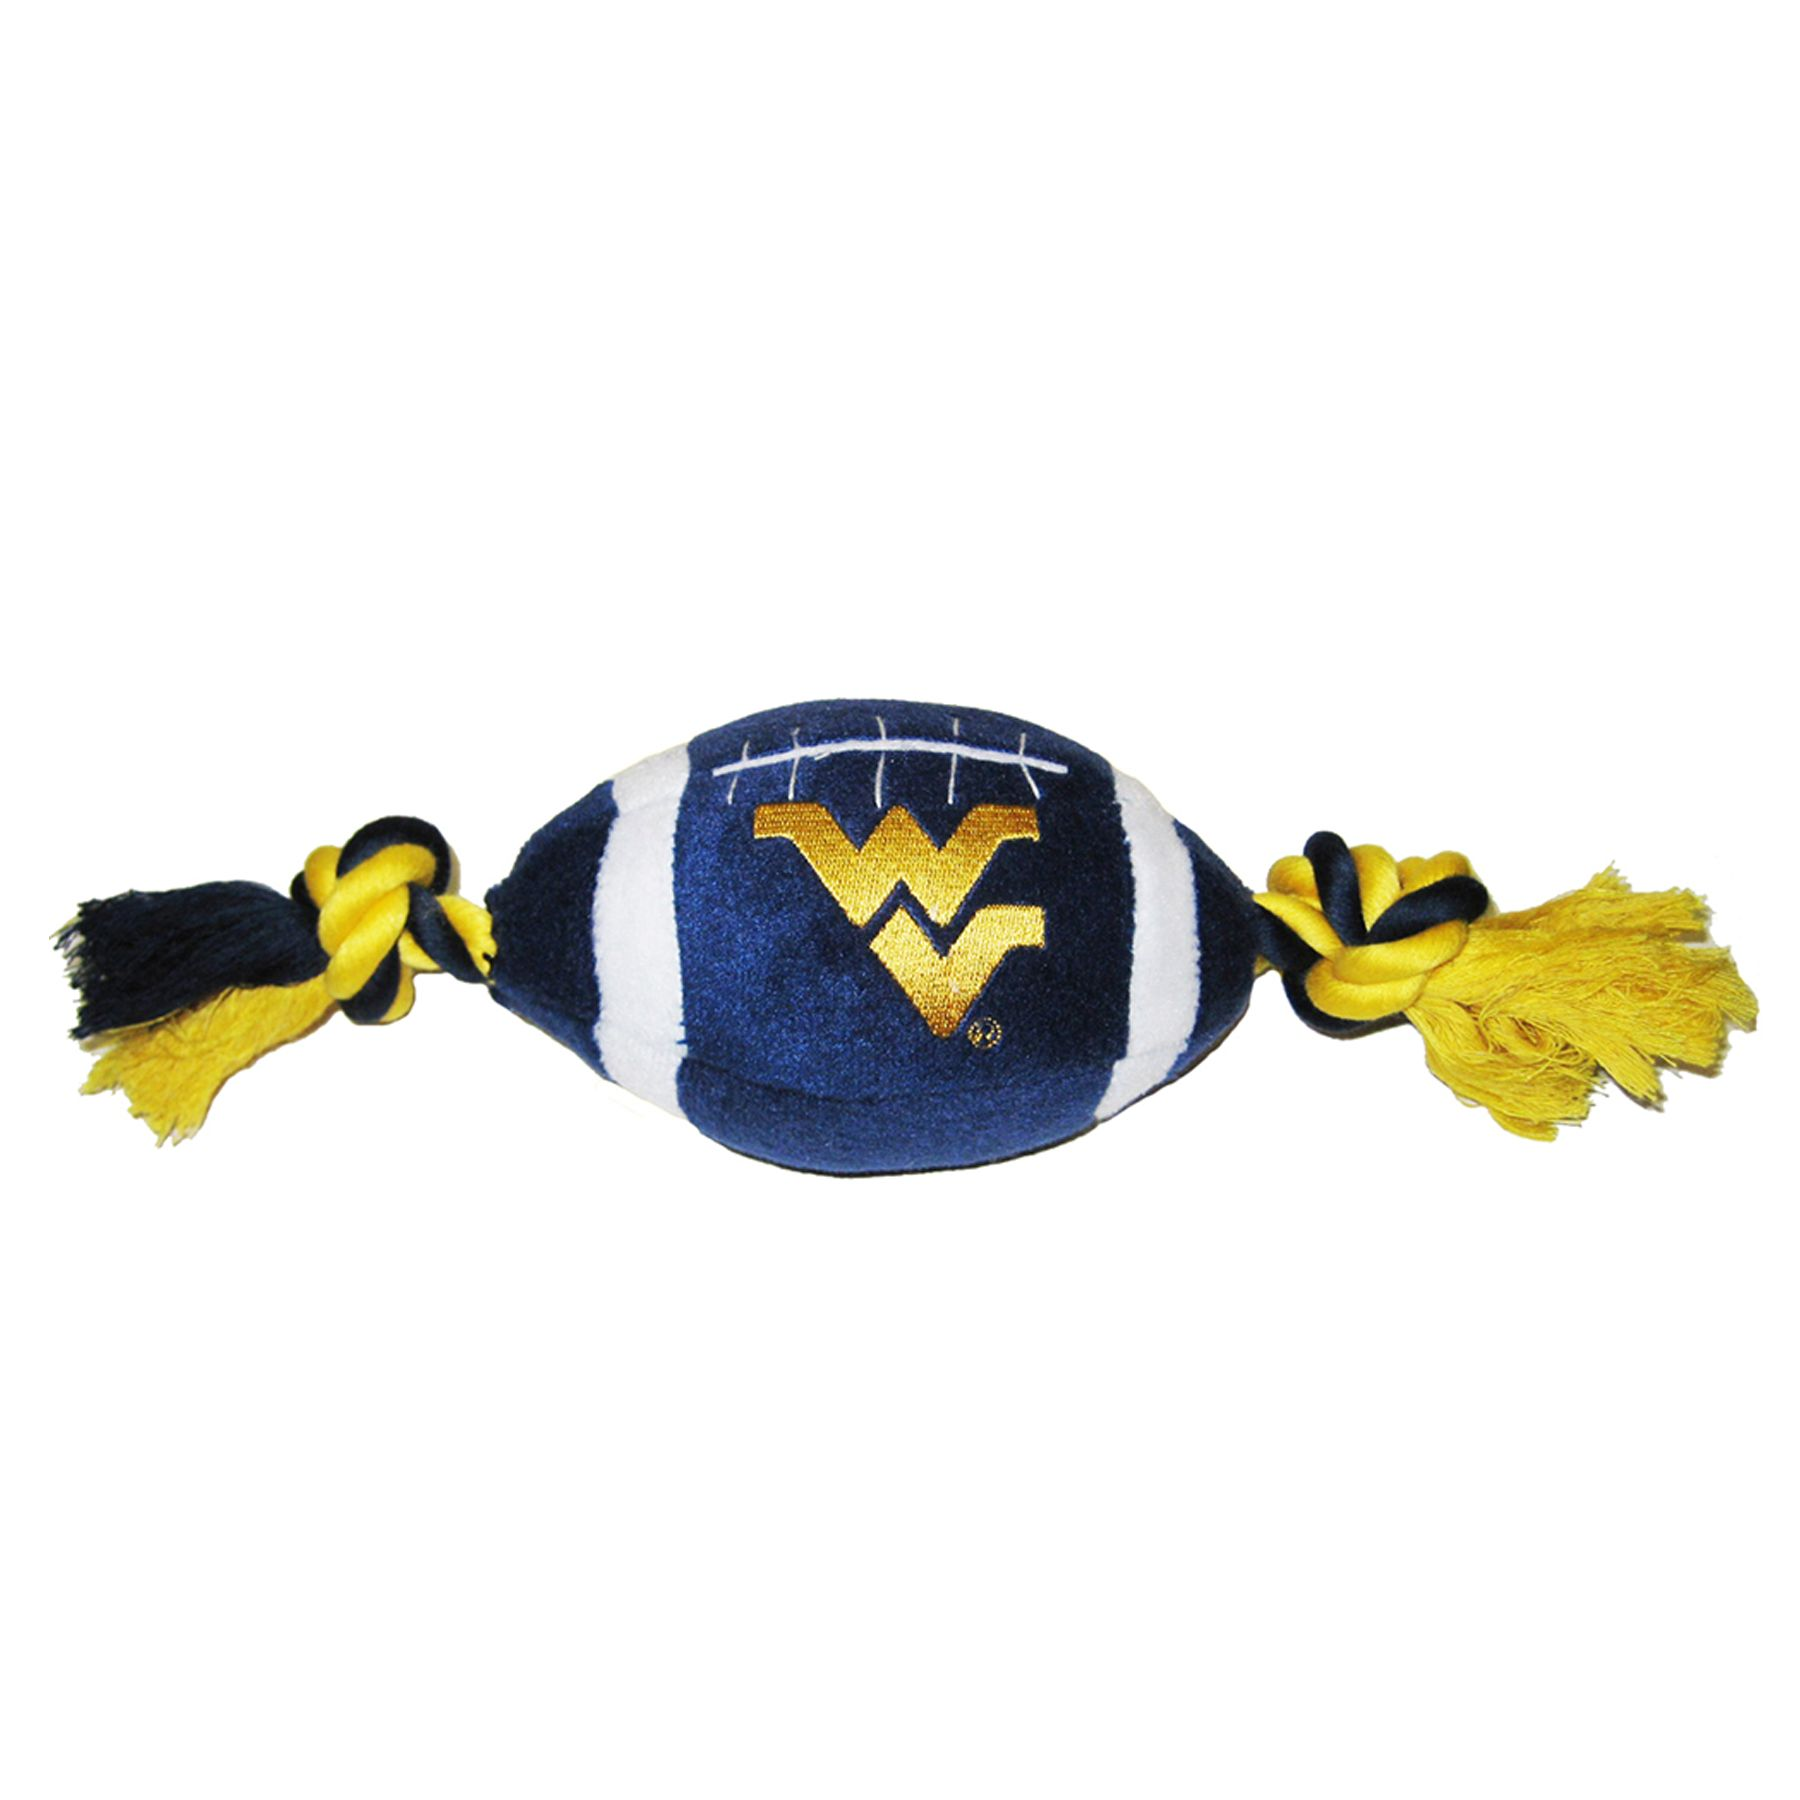 West Virginia Mountaineers Ncaa Football Dog Toy, Pets First 5242750